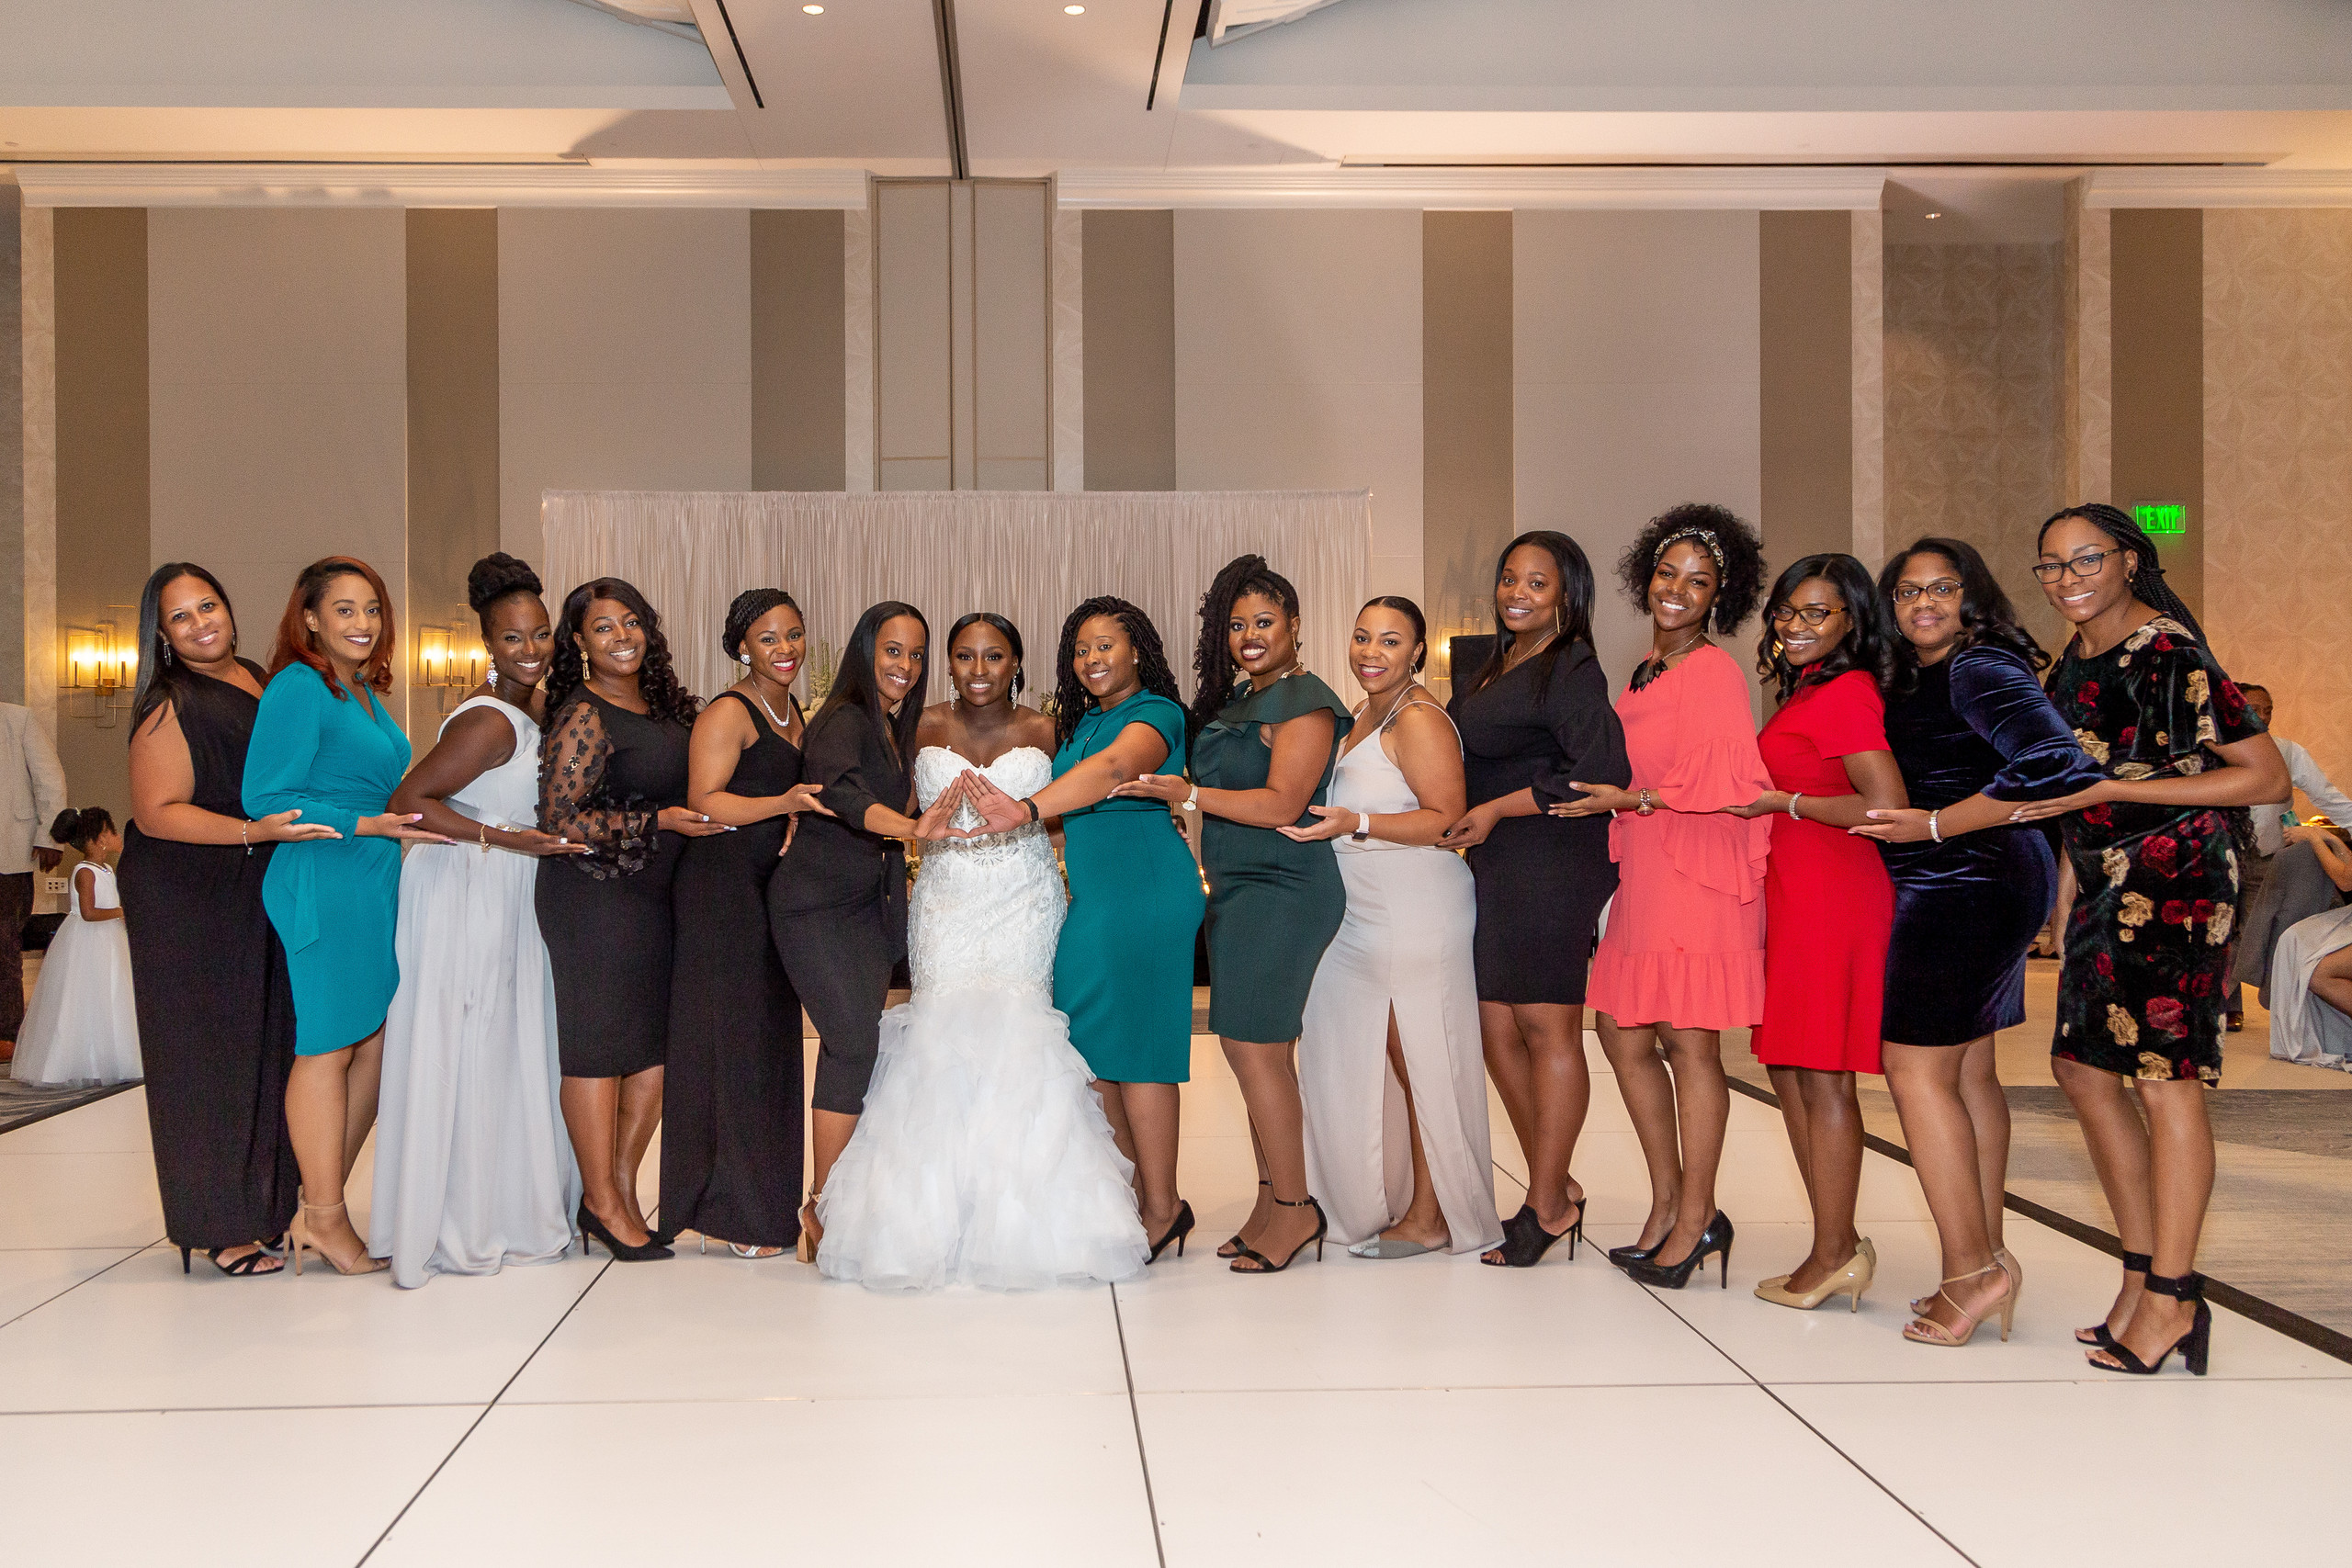 The bride takes a picture with the ladies of Delta Sigma Theta Sorority Incorporated during the wedding reception at the Hilton Main in Norfolk, Virginia.